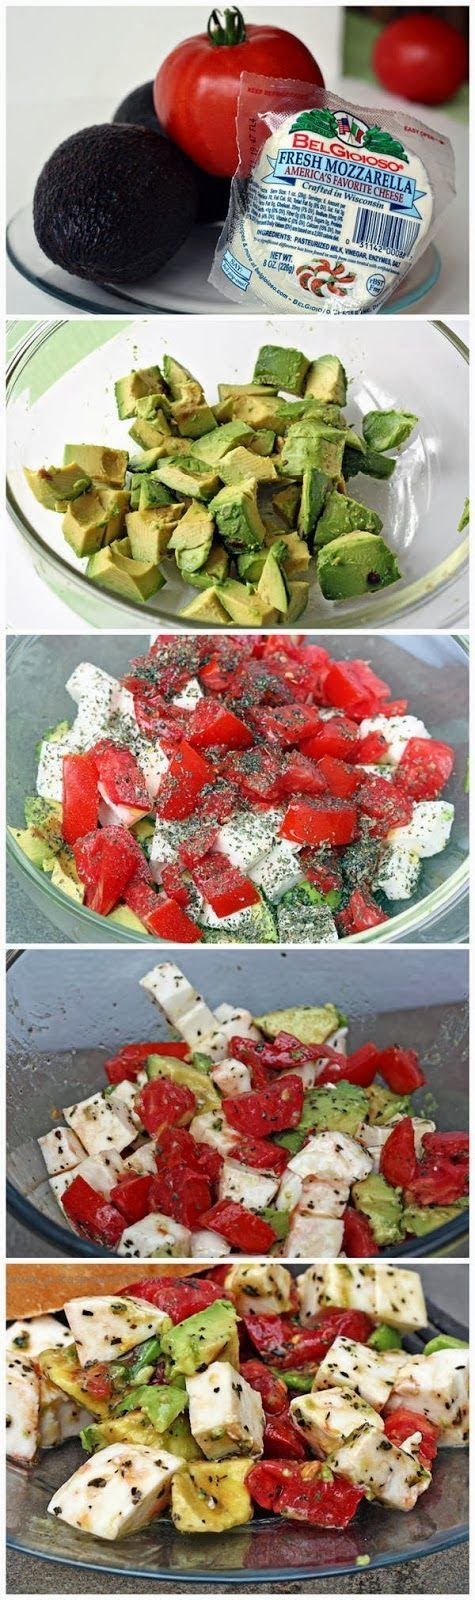 Mozzarella Salad Avocado Tomato Salad by food-exclusive Salad Natural Supplements and Vitamins